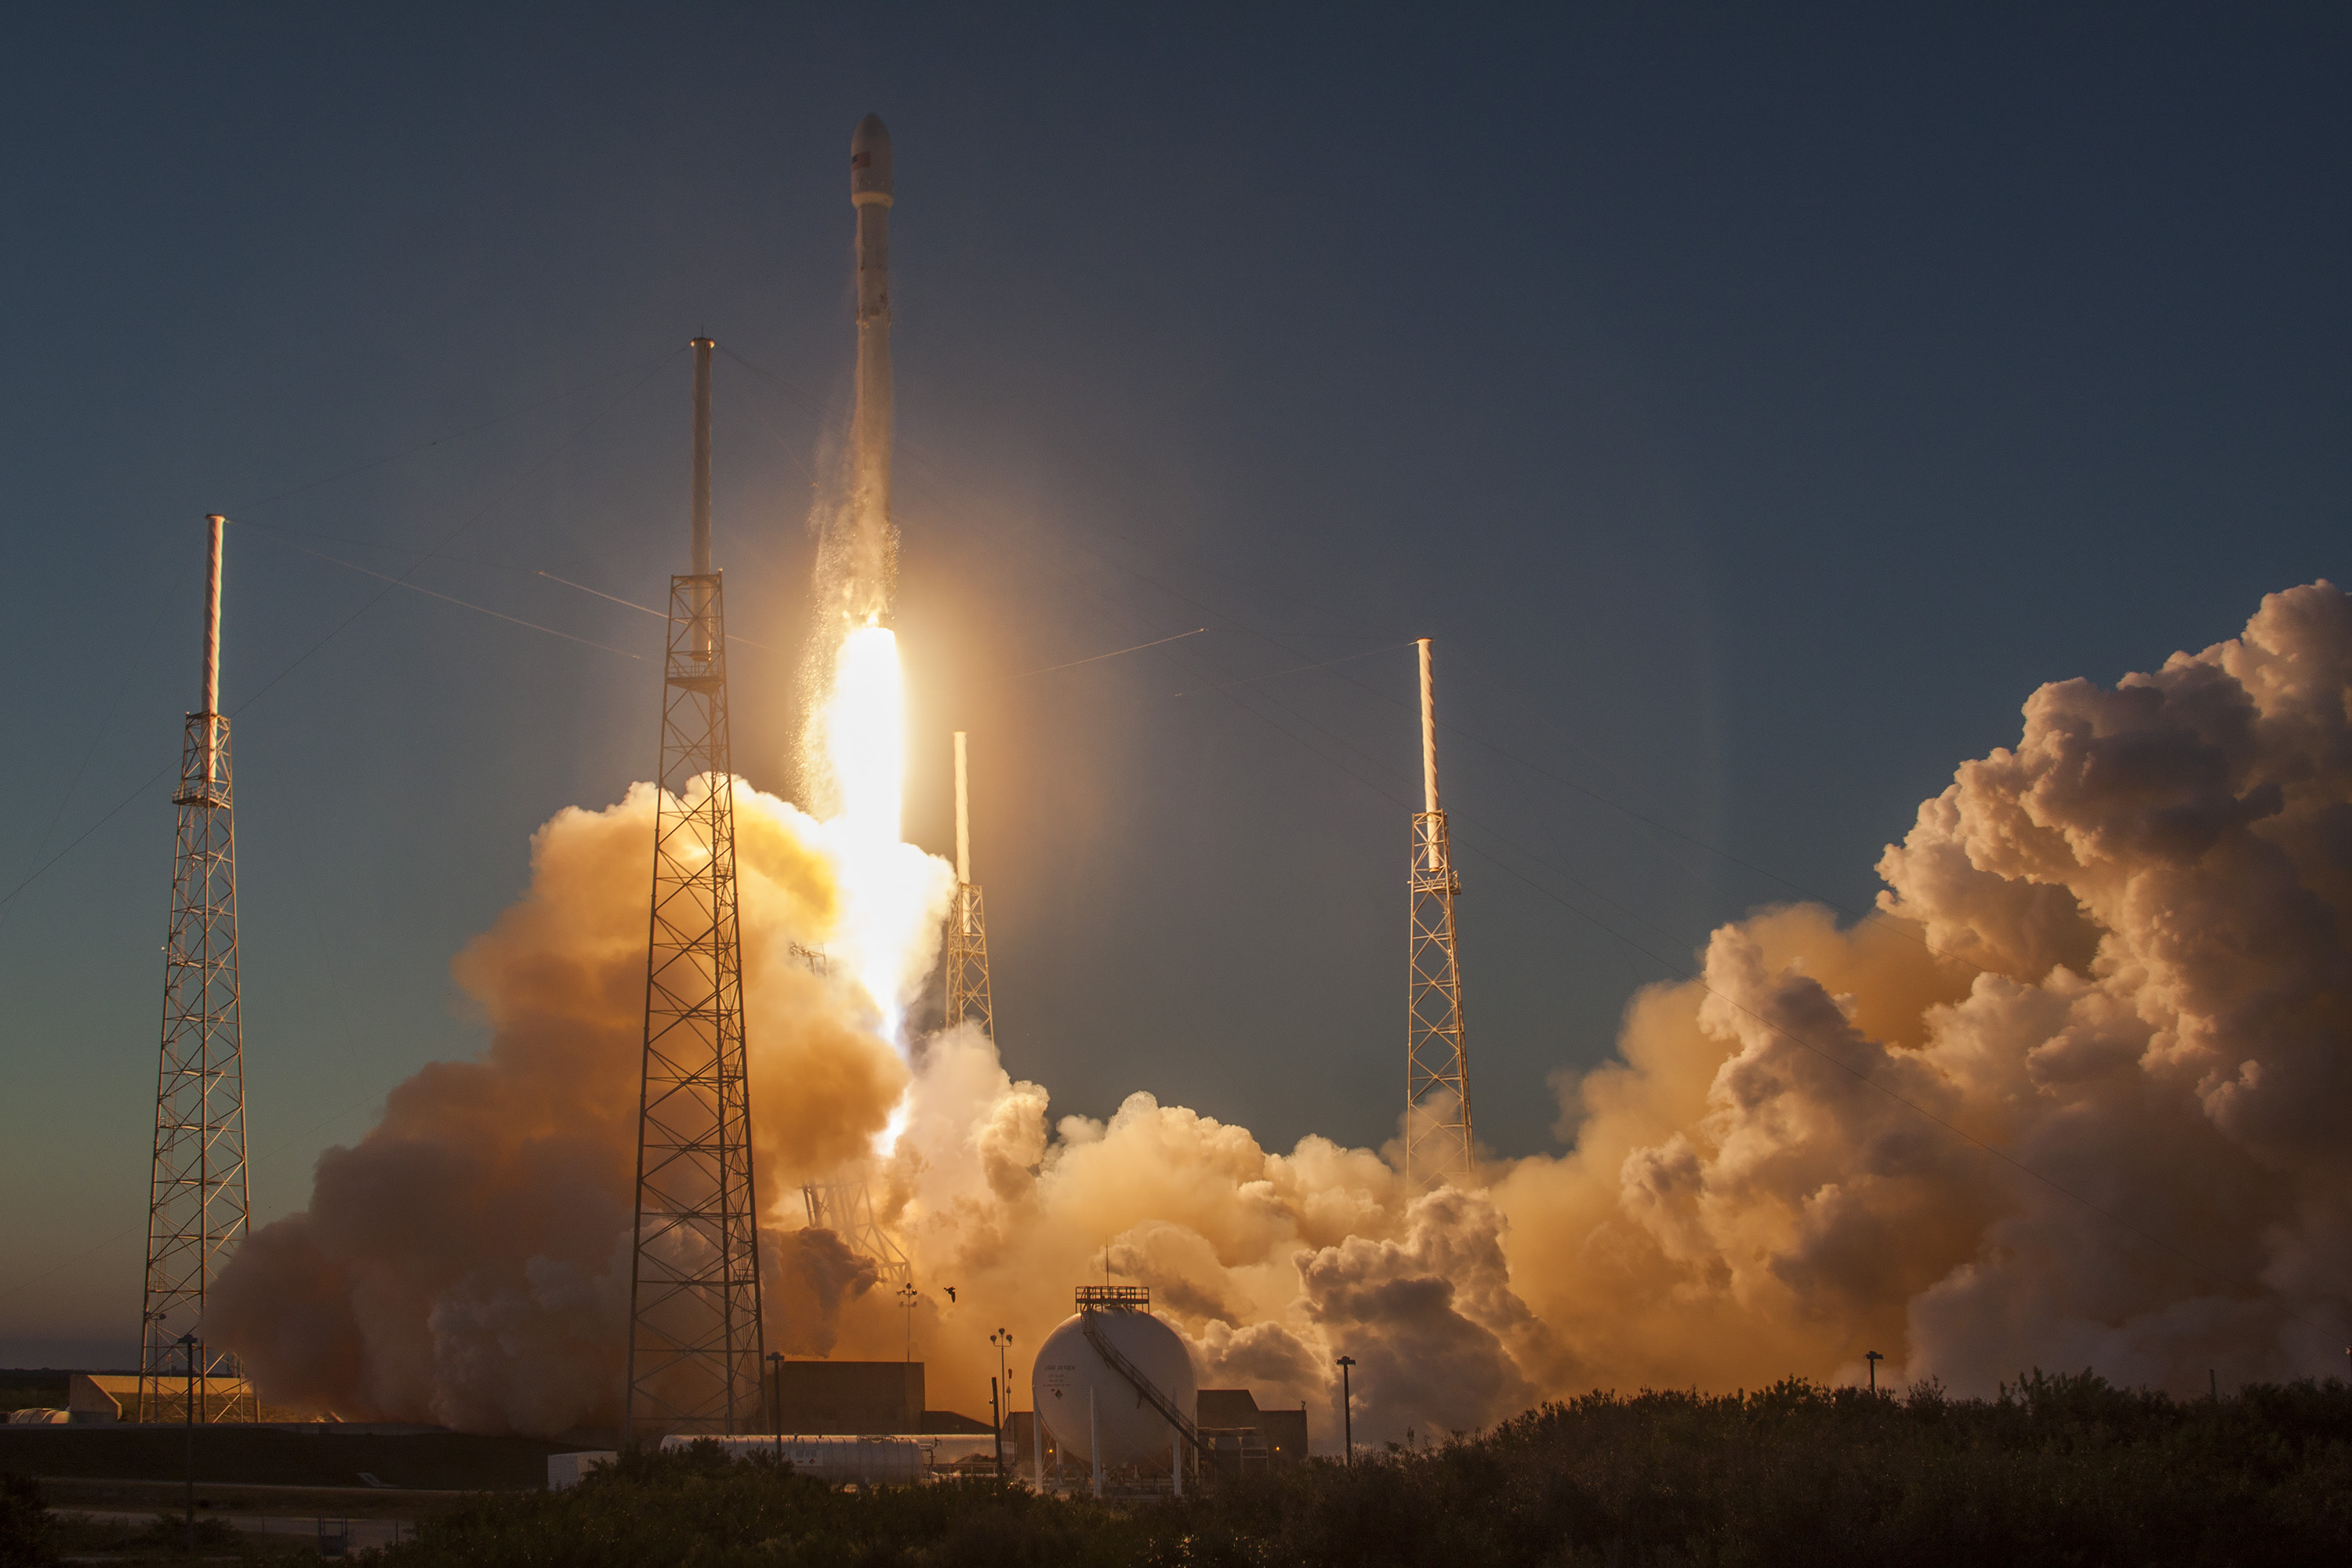 nasa satellite launch today - HD 3000×2000